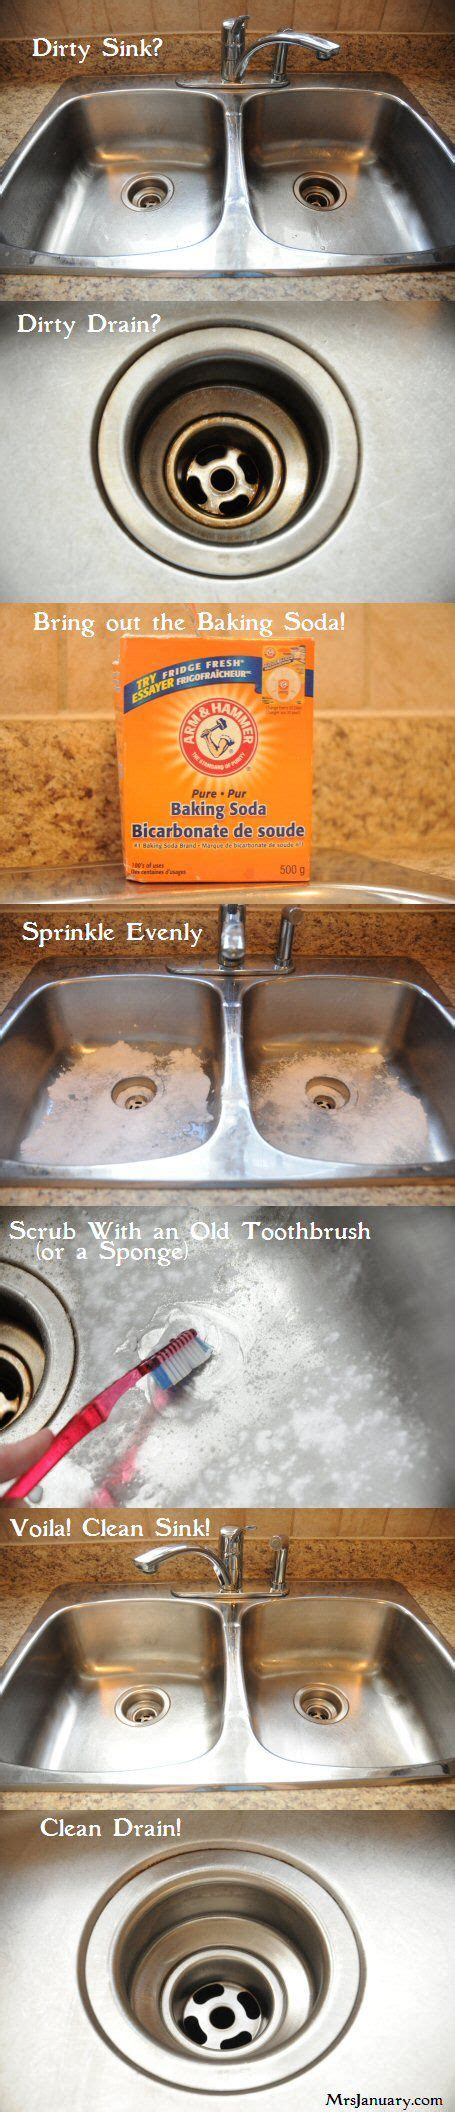 how to shine stainless steel sink how to shine a stainless steel sink cleaning my entire